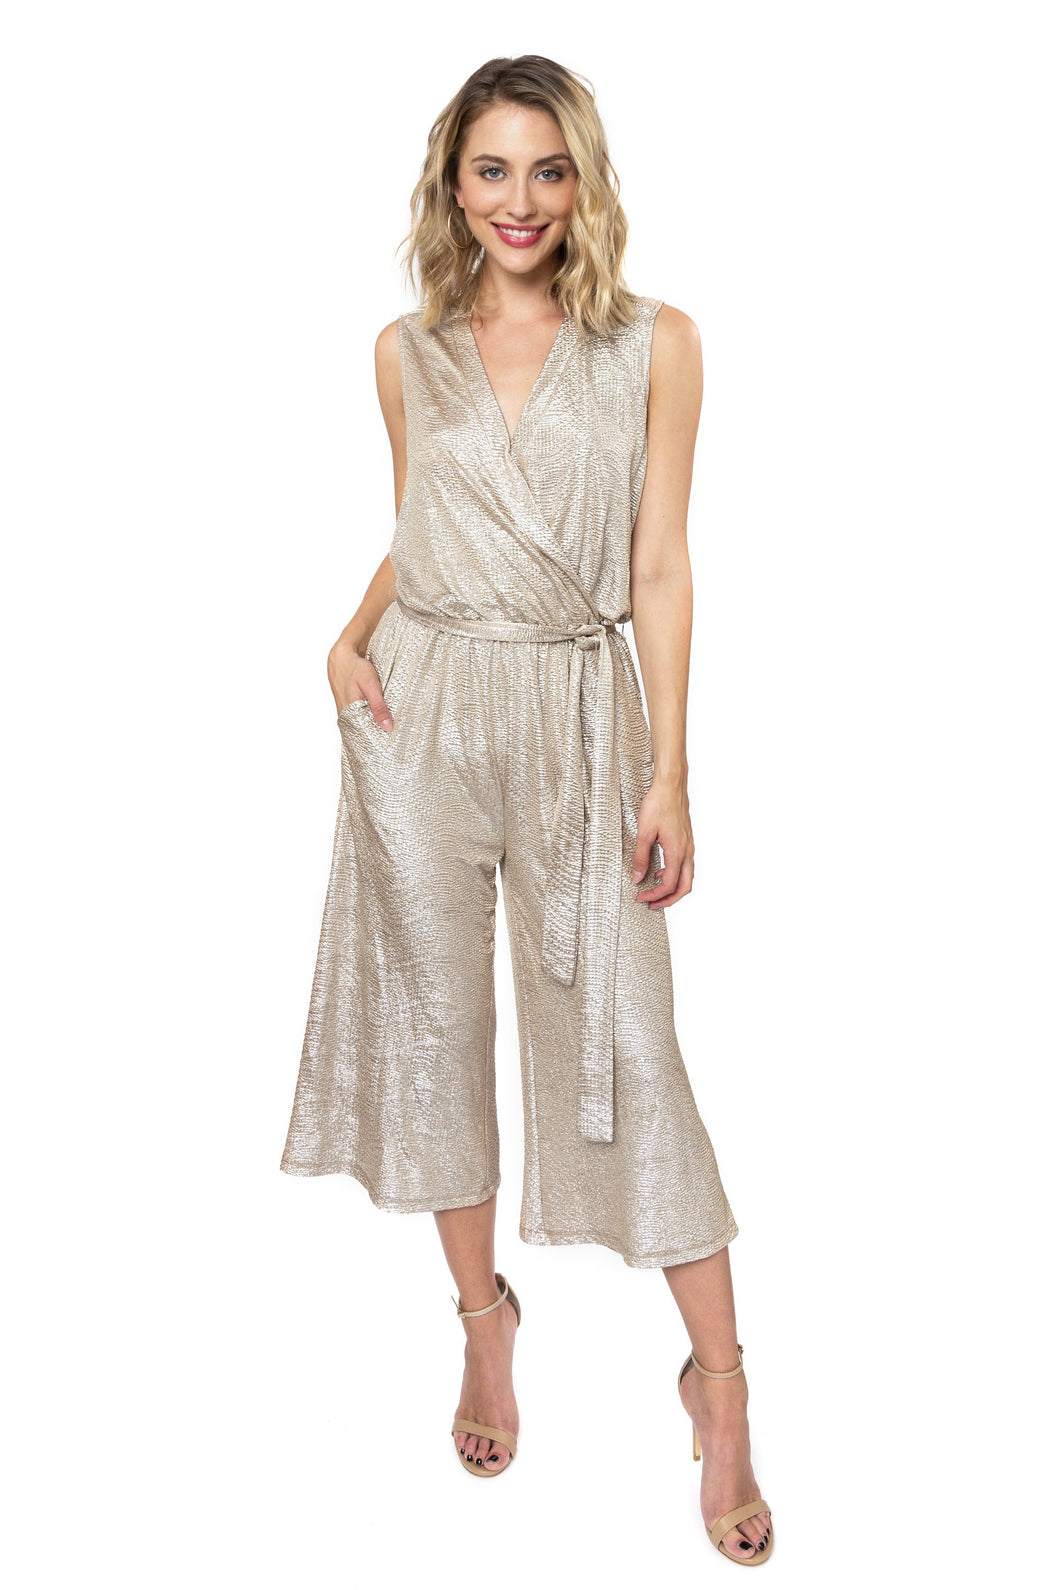 Zoey Sterling Jumpsuit